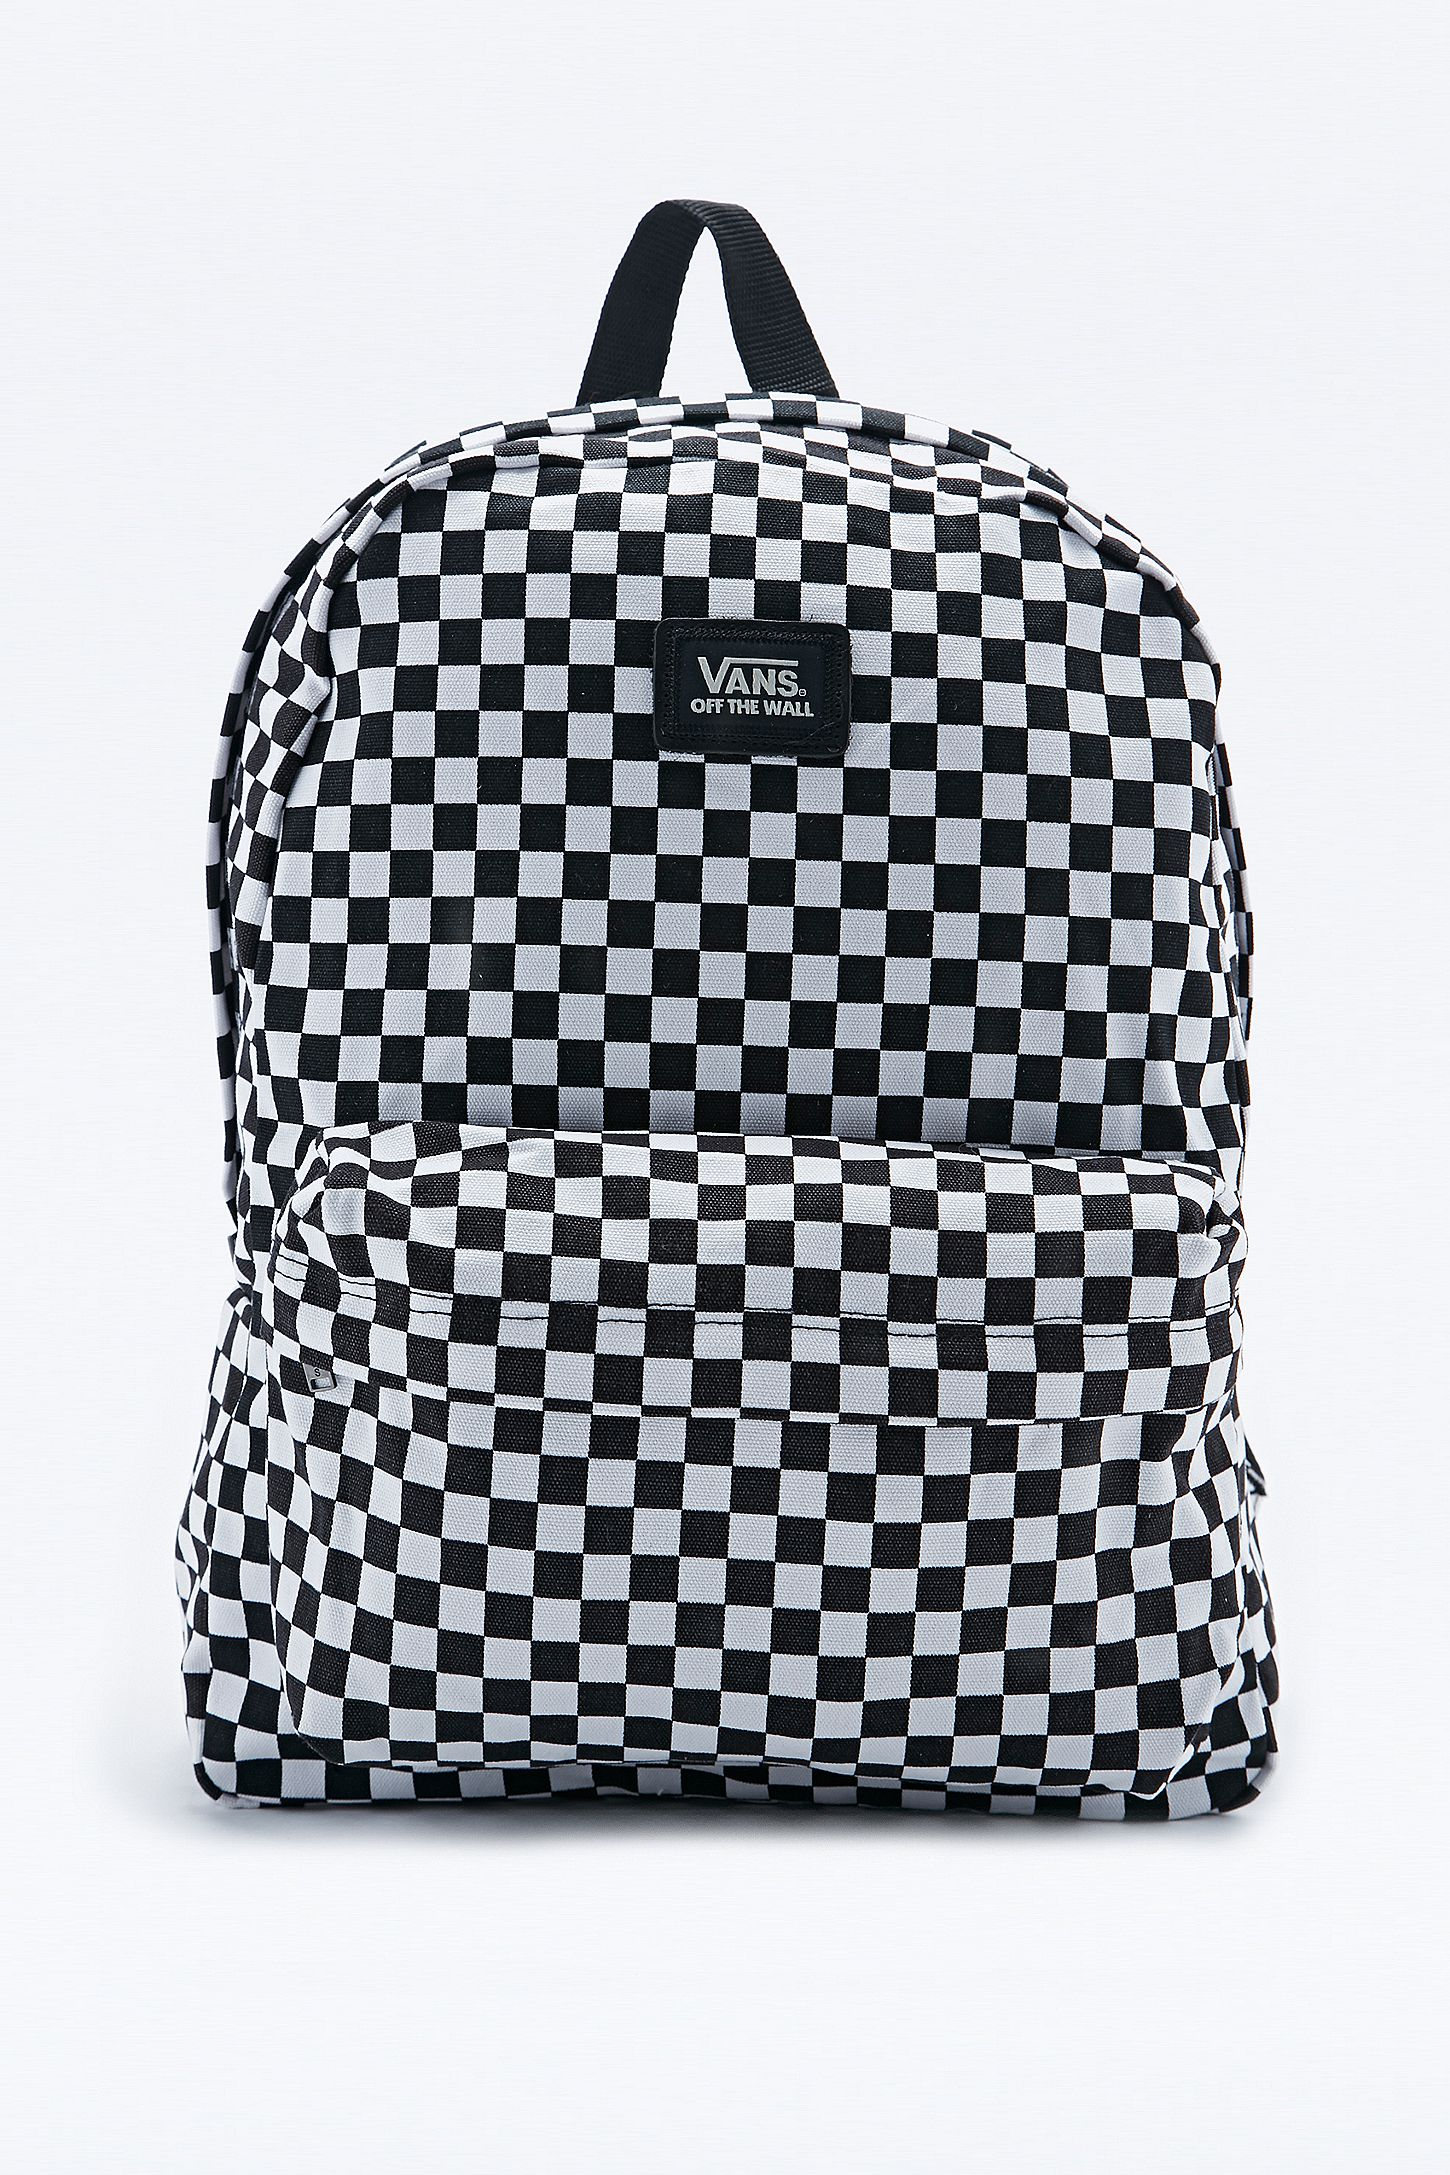 ffd53c940c Vans Checkerboard Backpack in Black and White